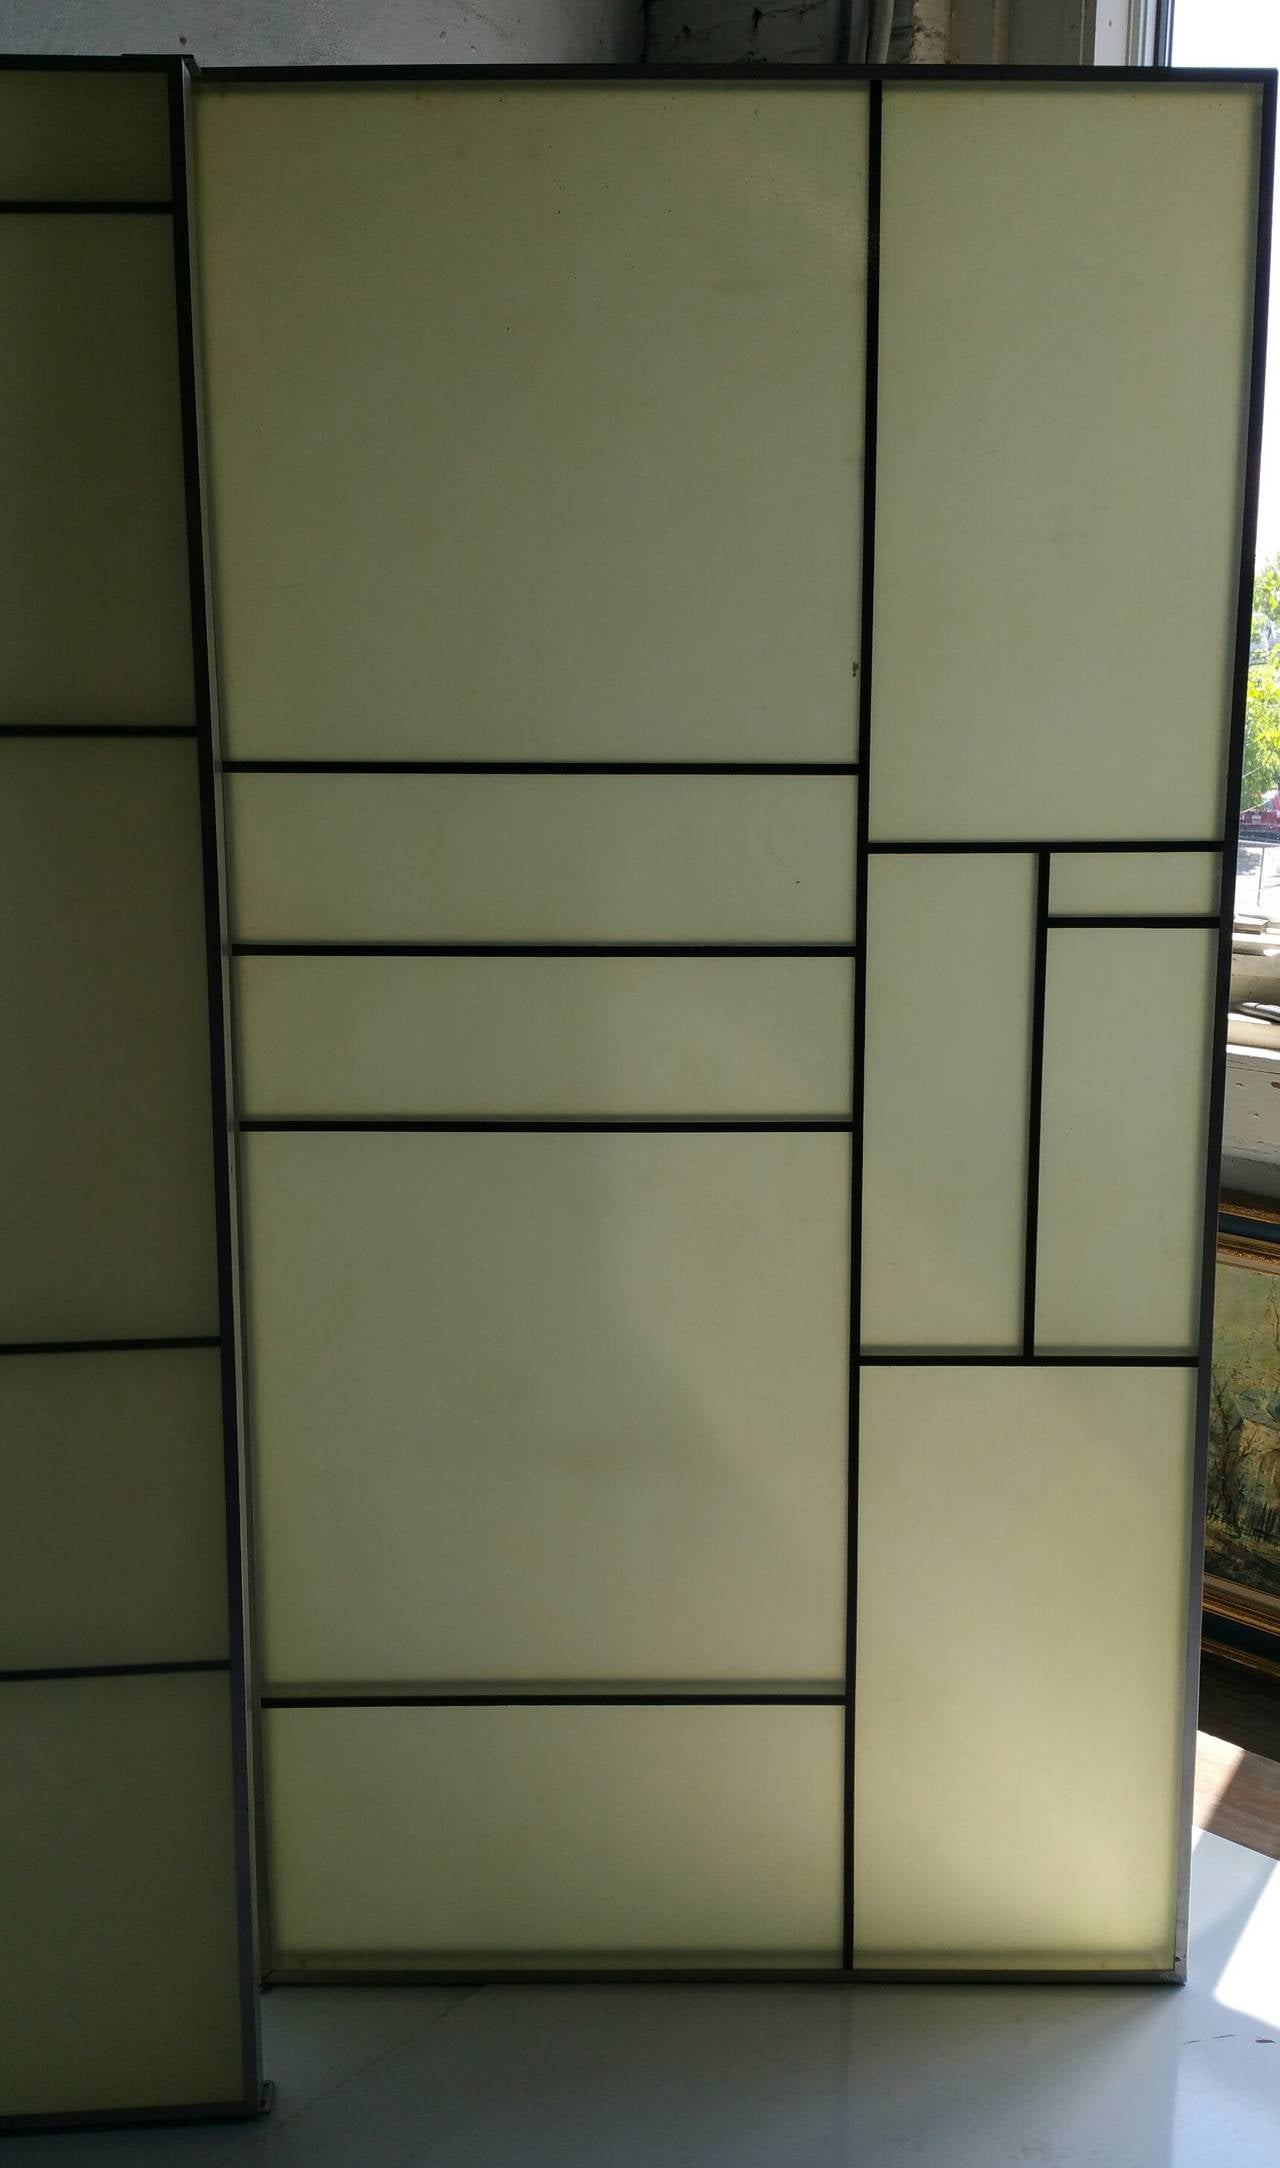 Architectural Aluminum and Fiberglass Panels or Screen, Mondrian Design For Sale 1